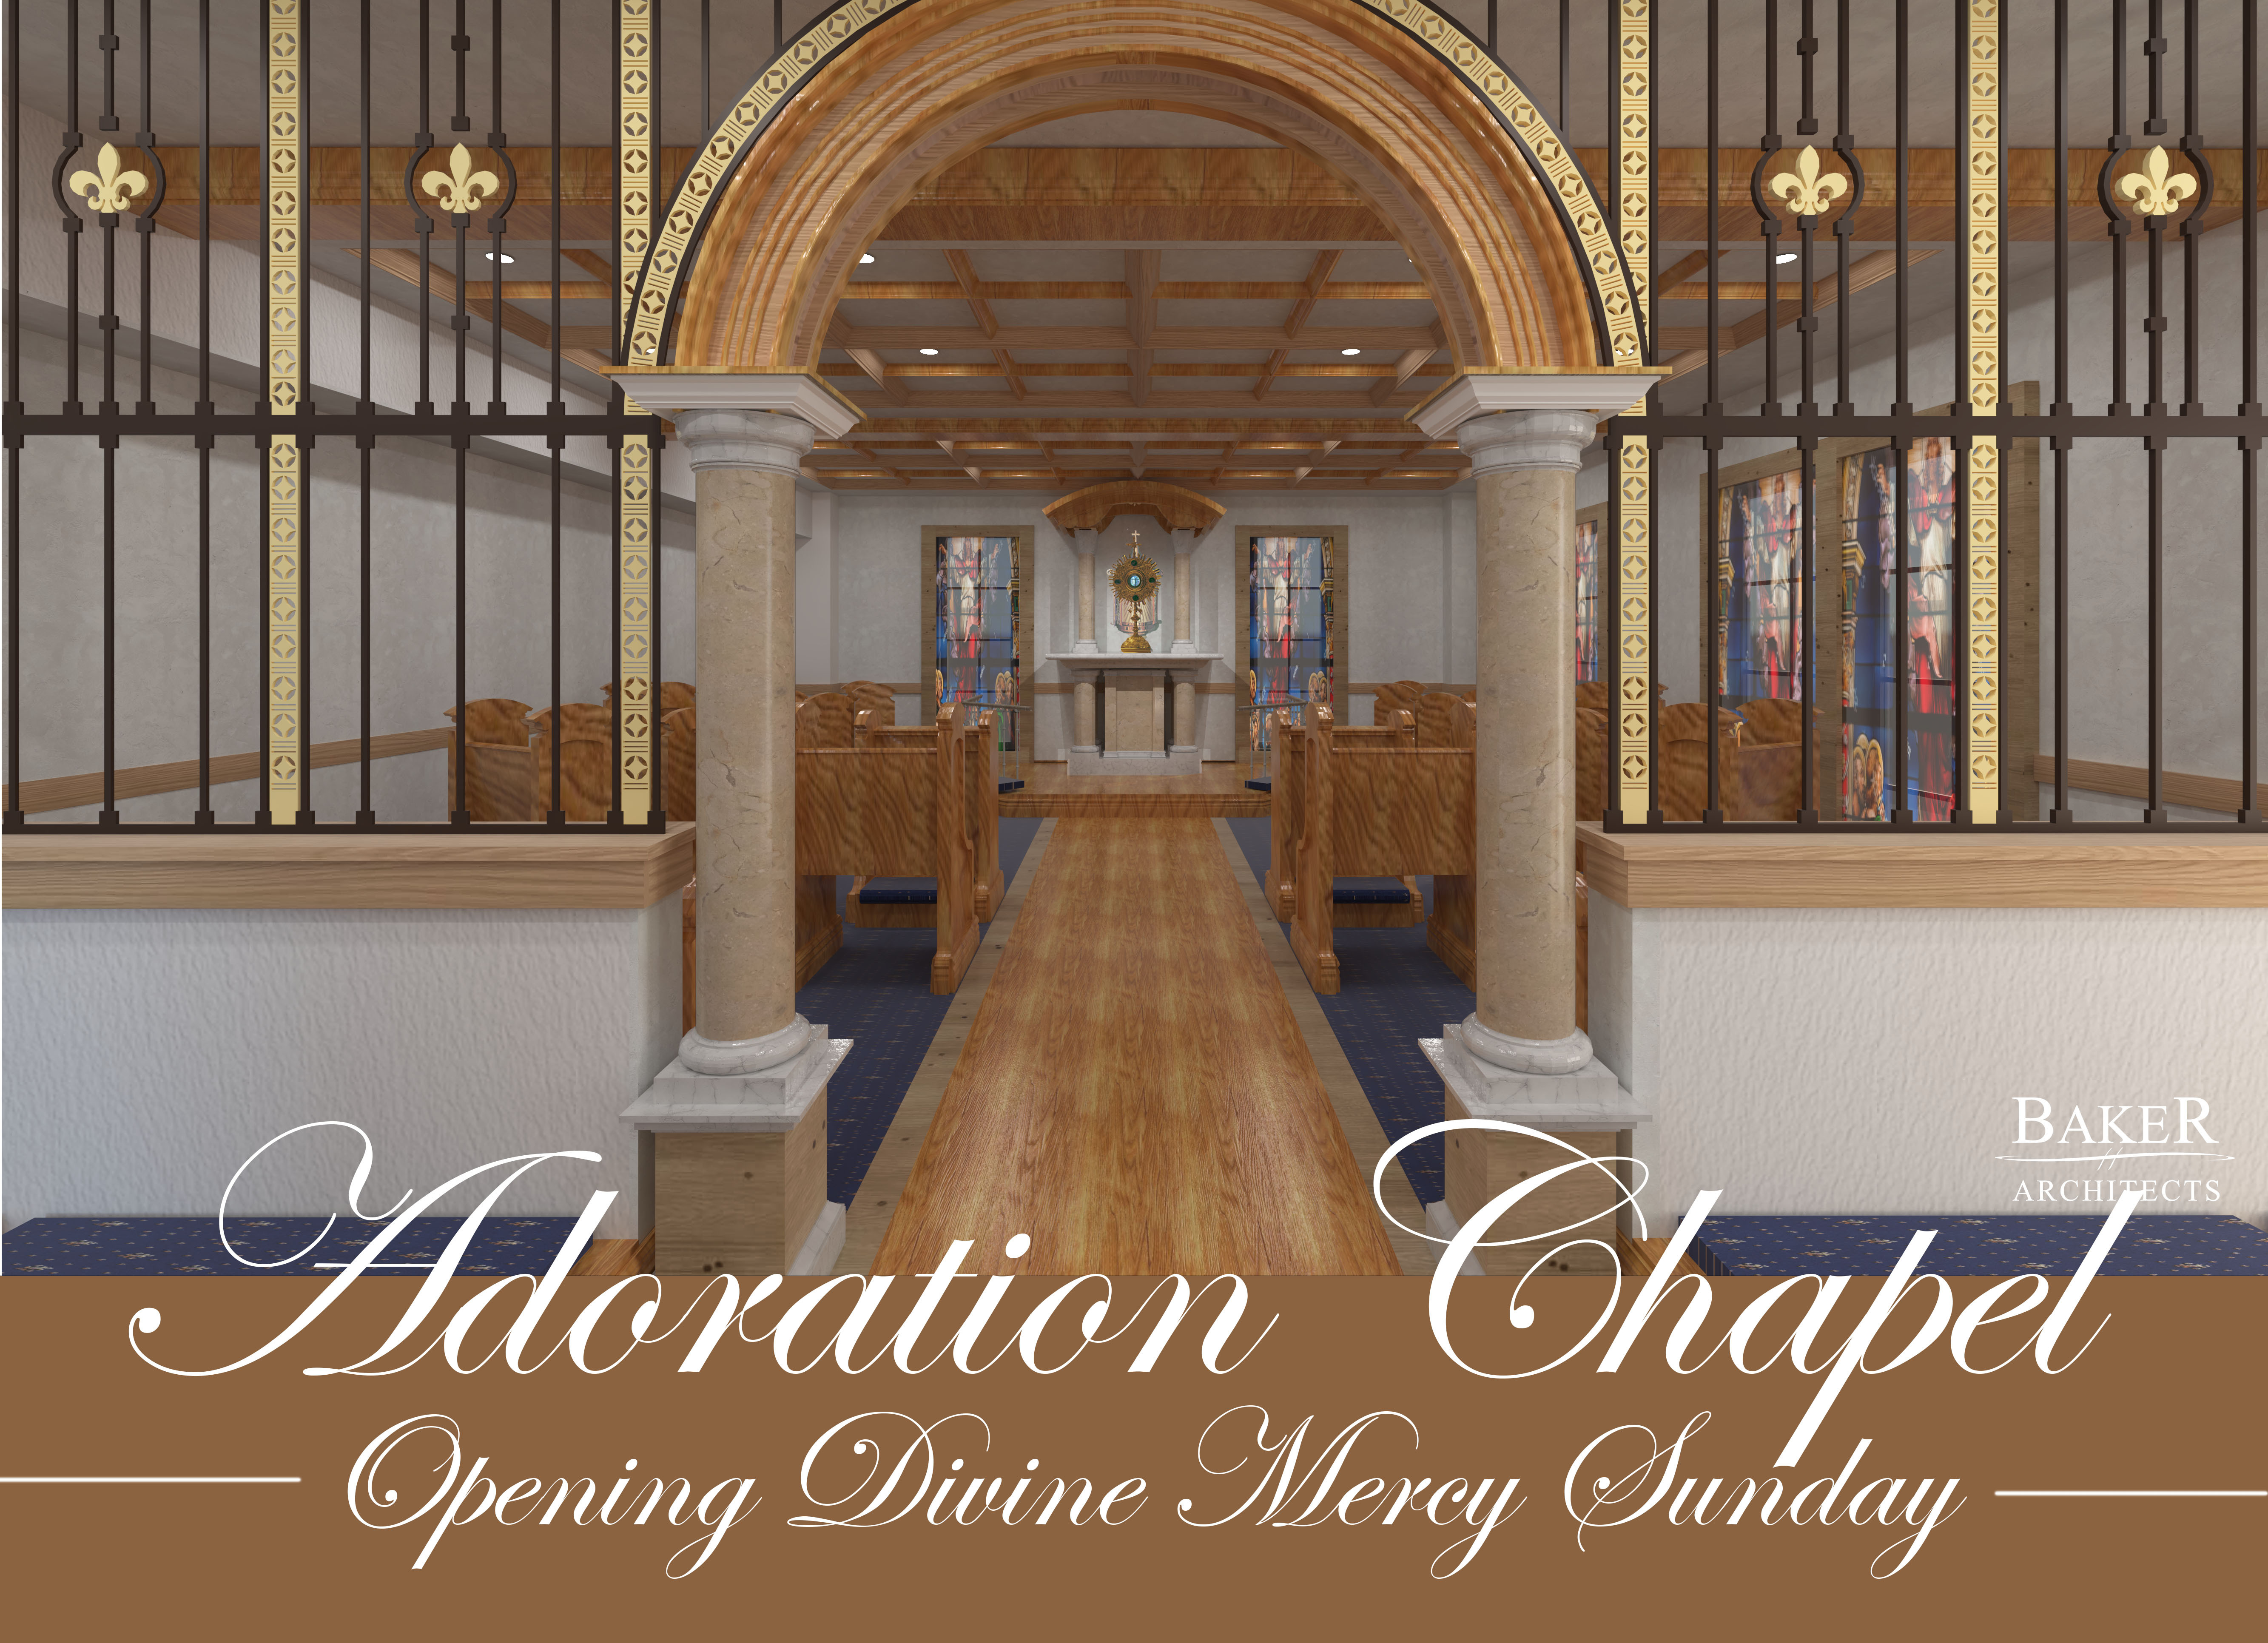 ADORATION CHAPEL  COMING SOON!